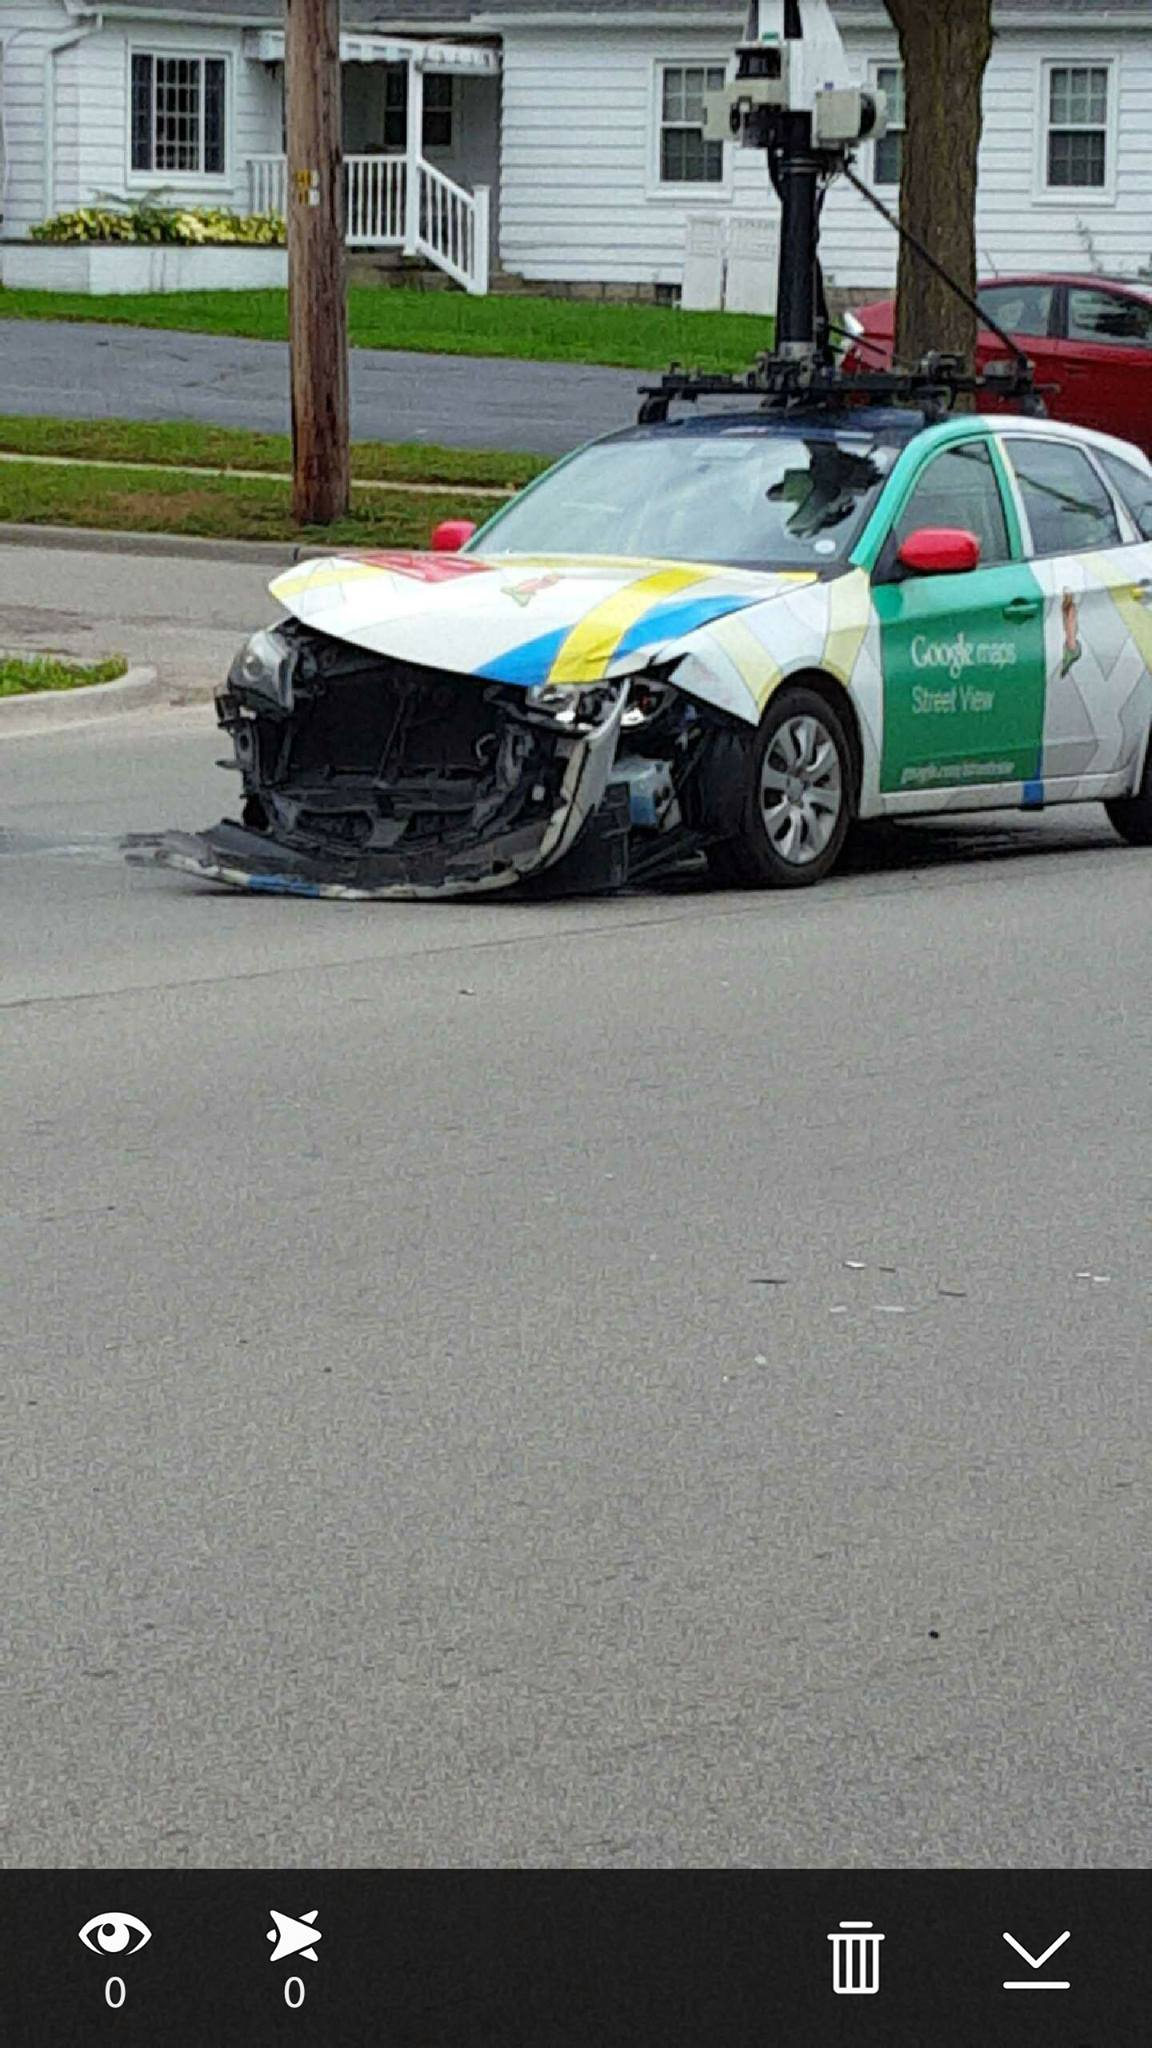 Google Street View Car Crashes in Grand Rapids Michigan